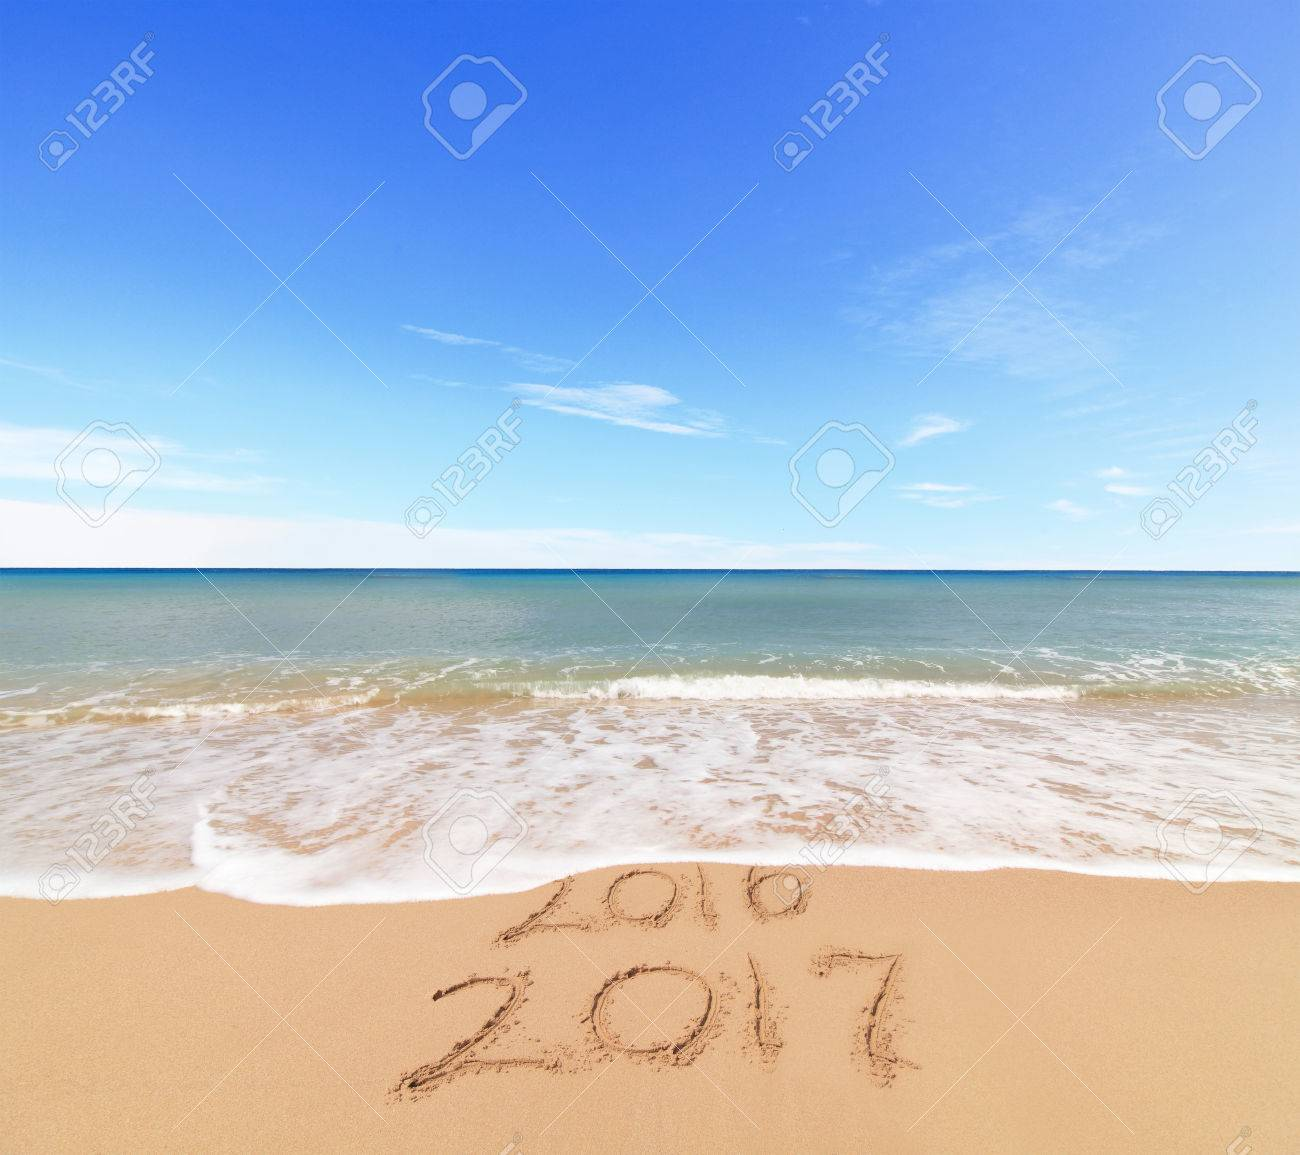 New Year 2017 is coming concept - inscription 2017 and 2016 on a beach sand, the wave is covering digits 2016 Standard-Bild - 65442124